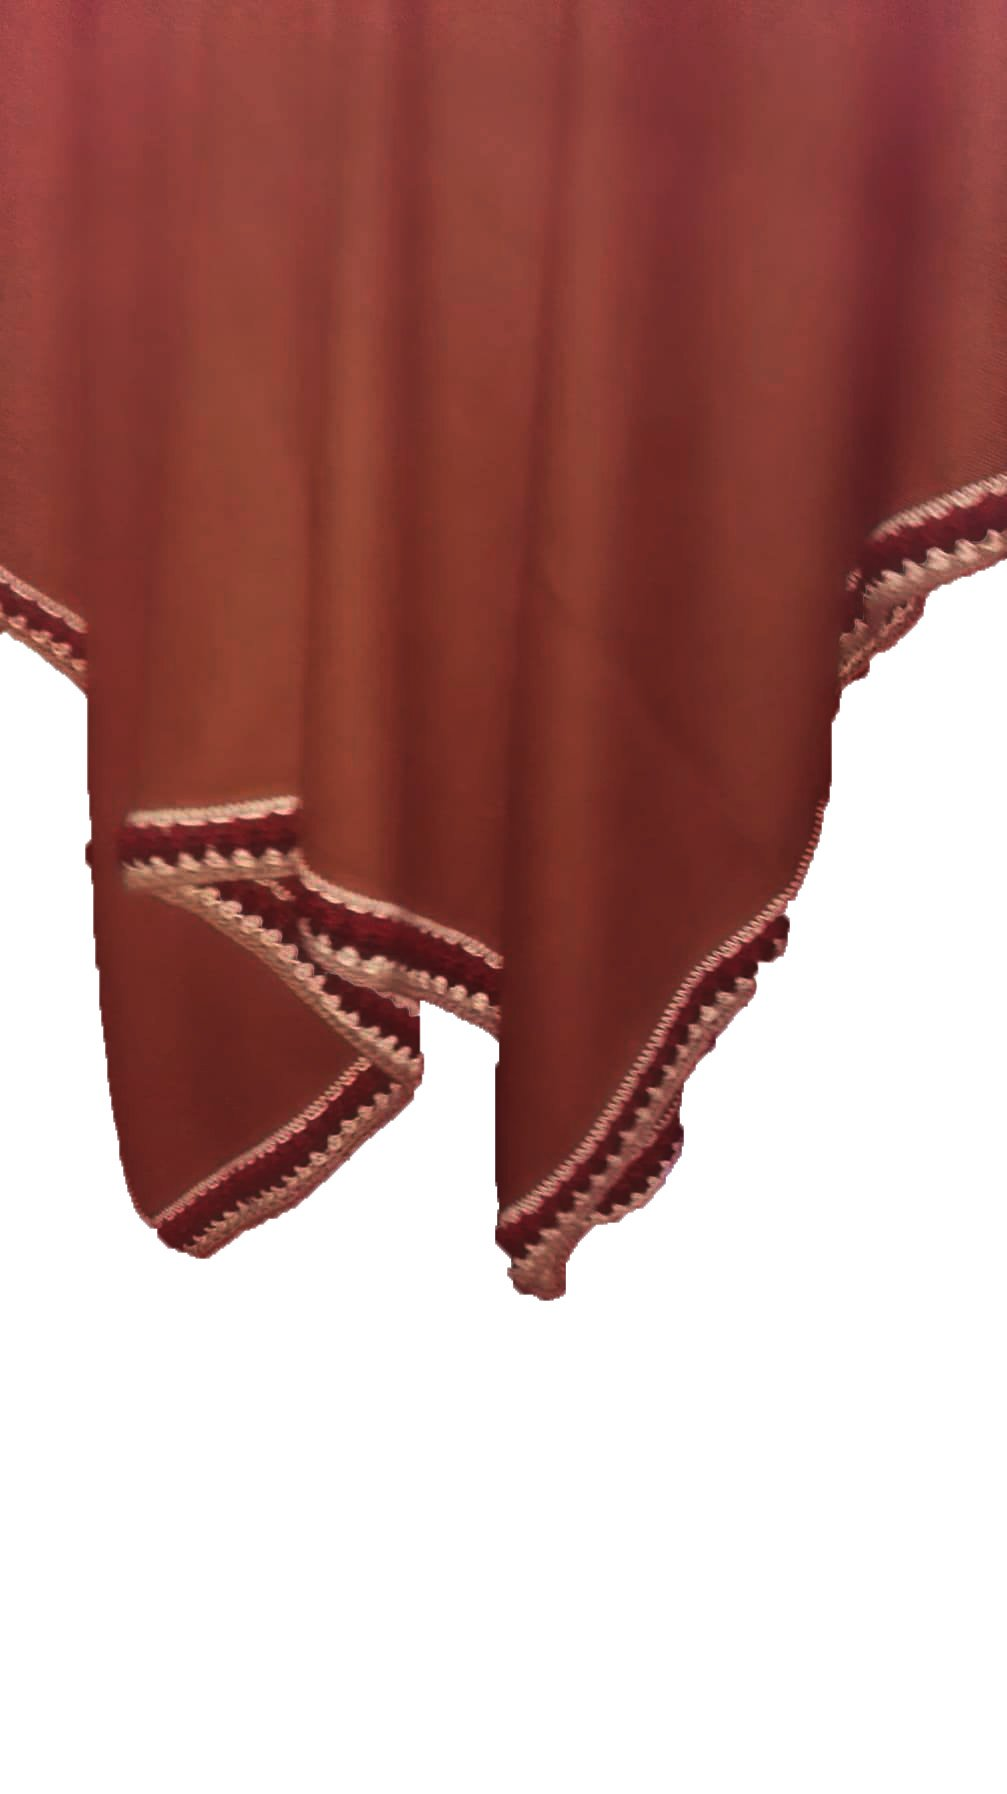 Hypoallergenic 100% Royal Alpaca Poncho Turtleneck Wrap Shawl, Brown by Sweet Dreams Home (Image #2)